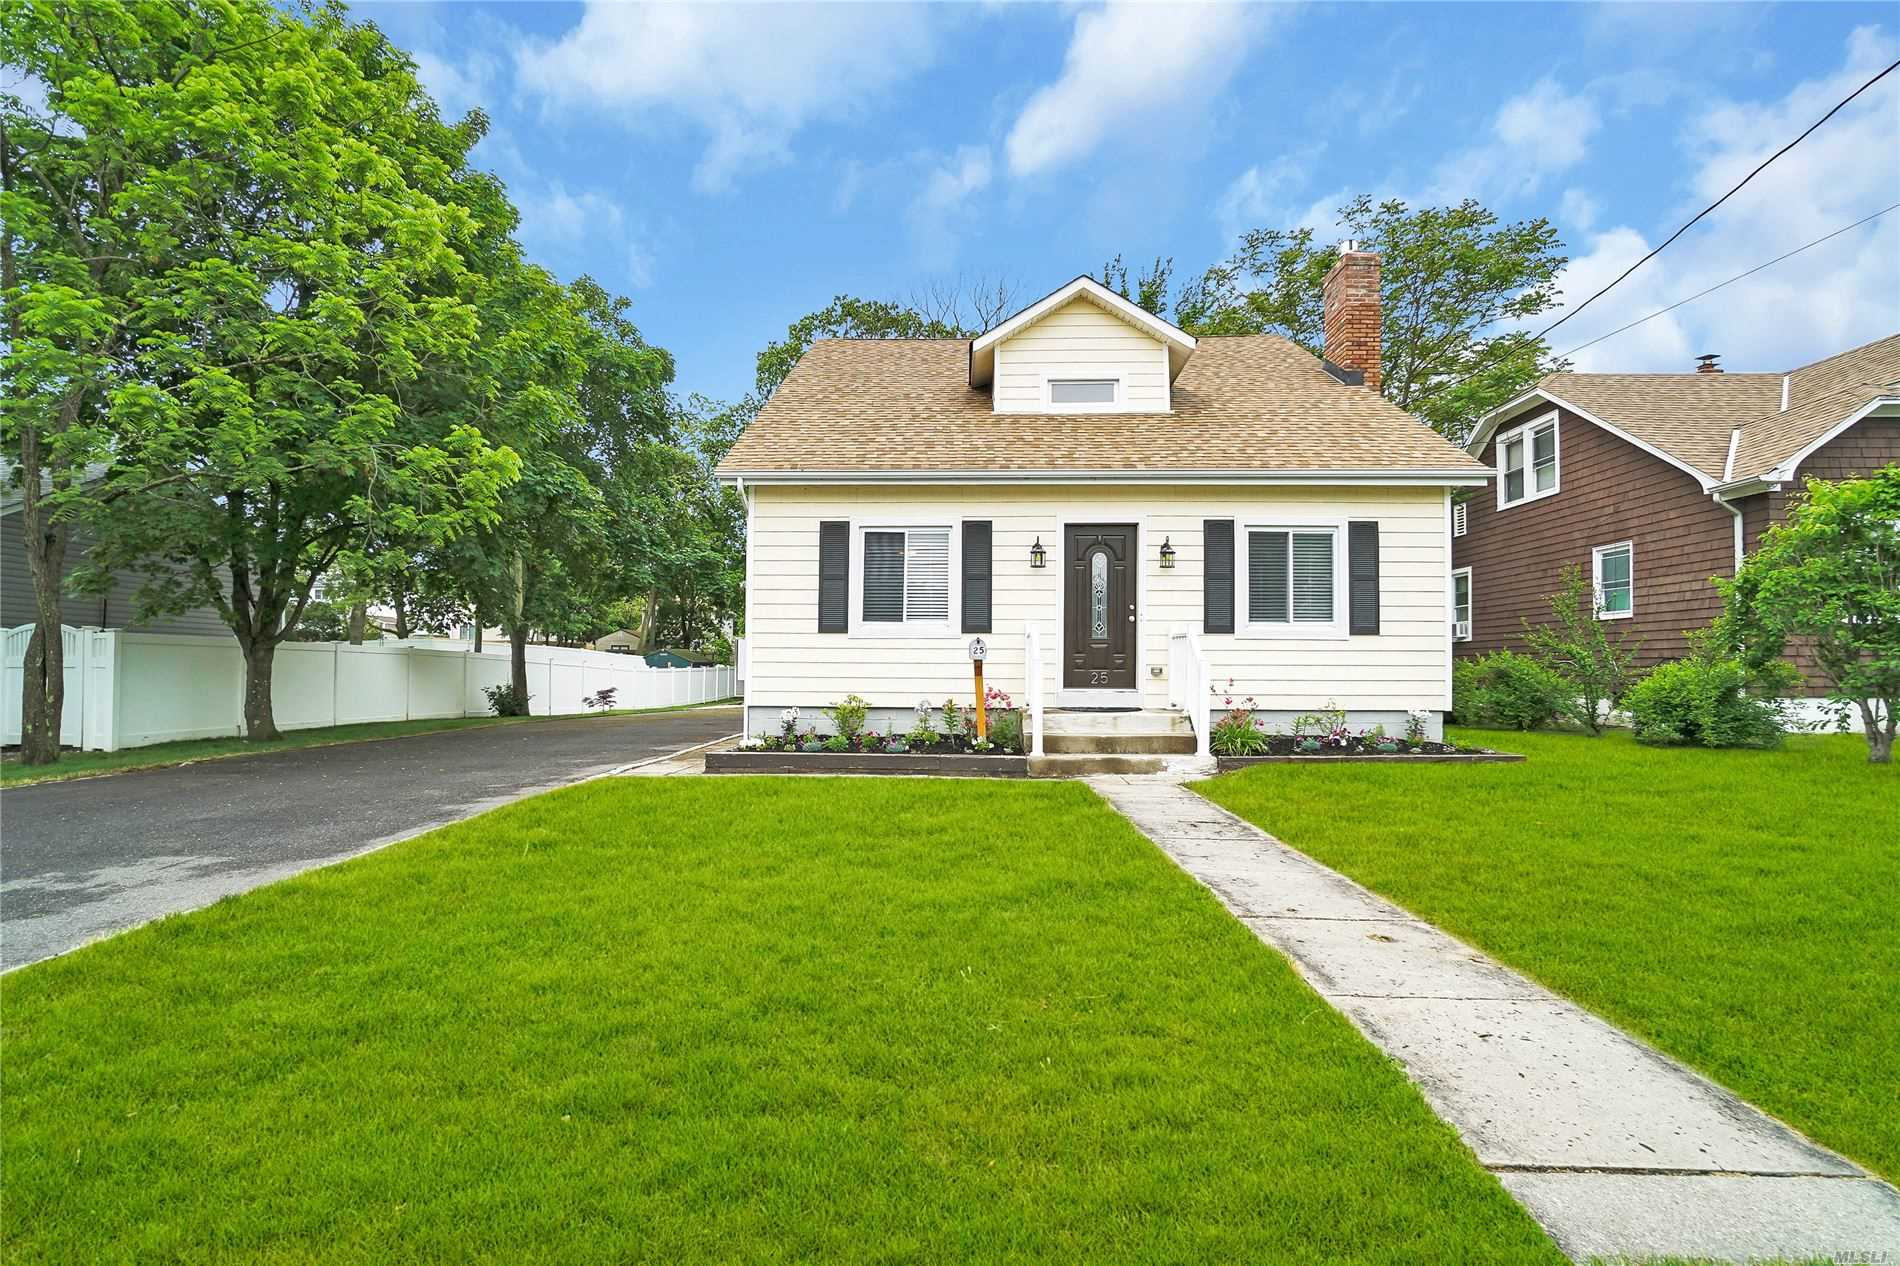 25 S Summit Ave, 2 - Patchogue, New York